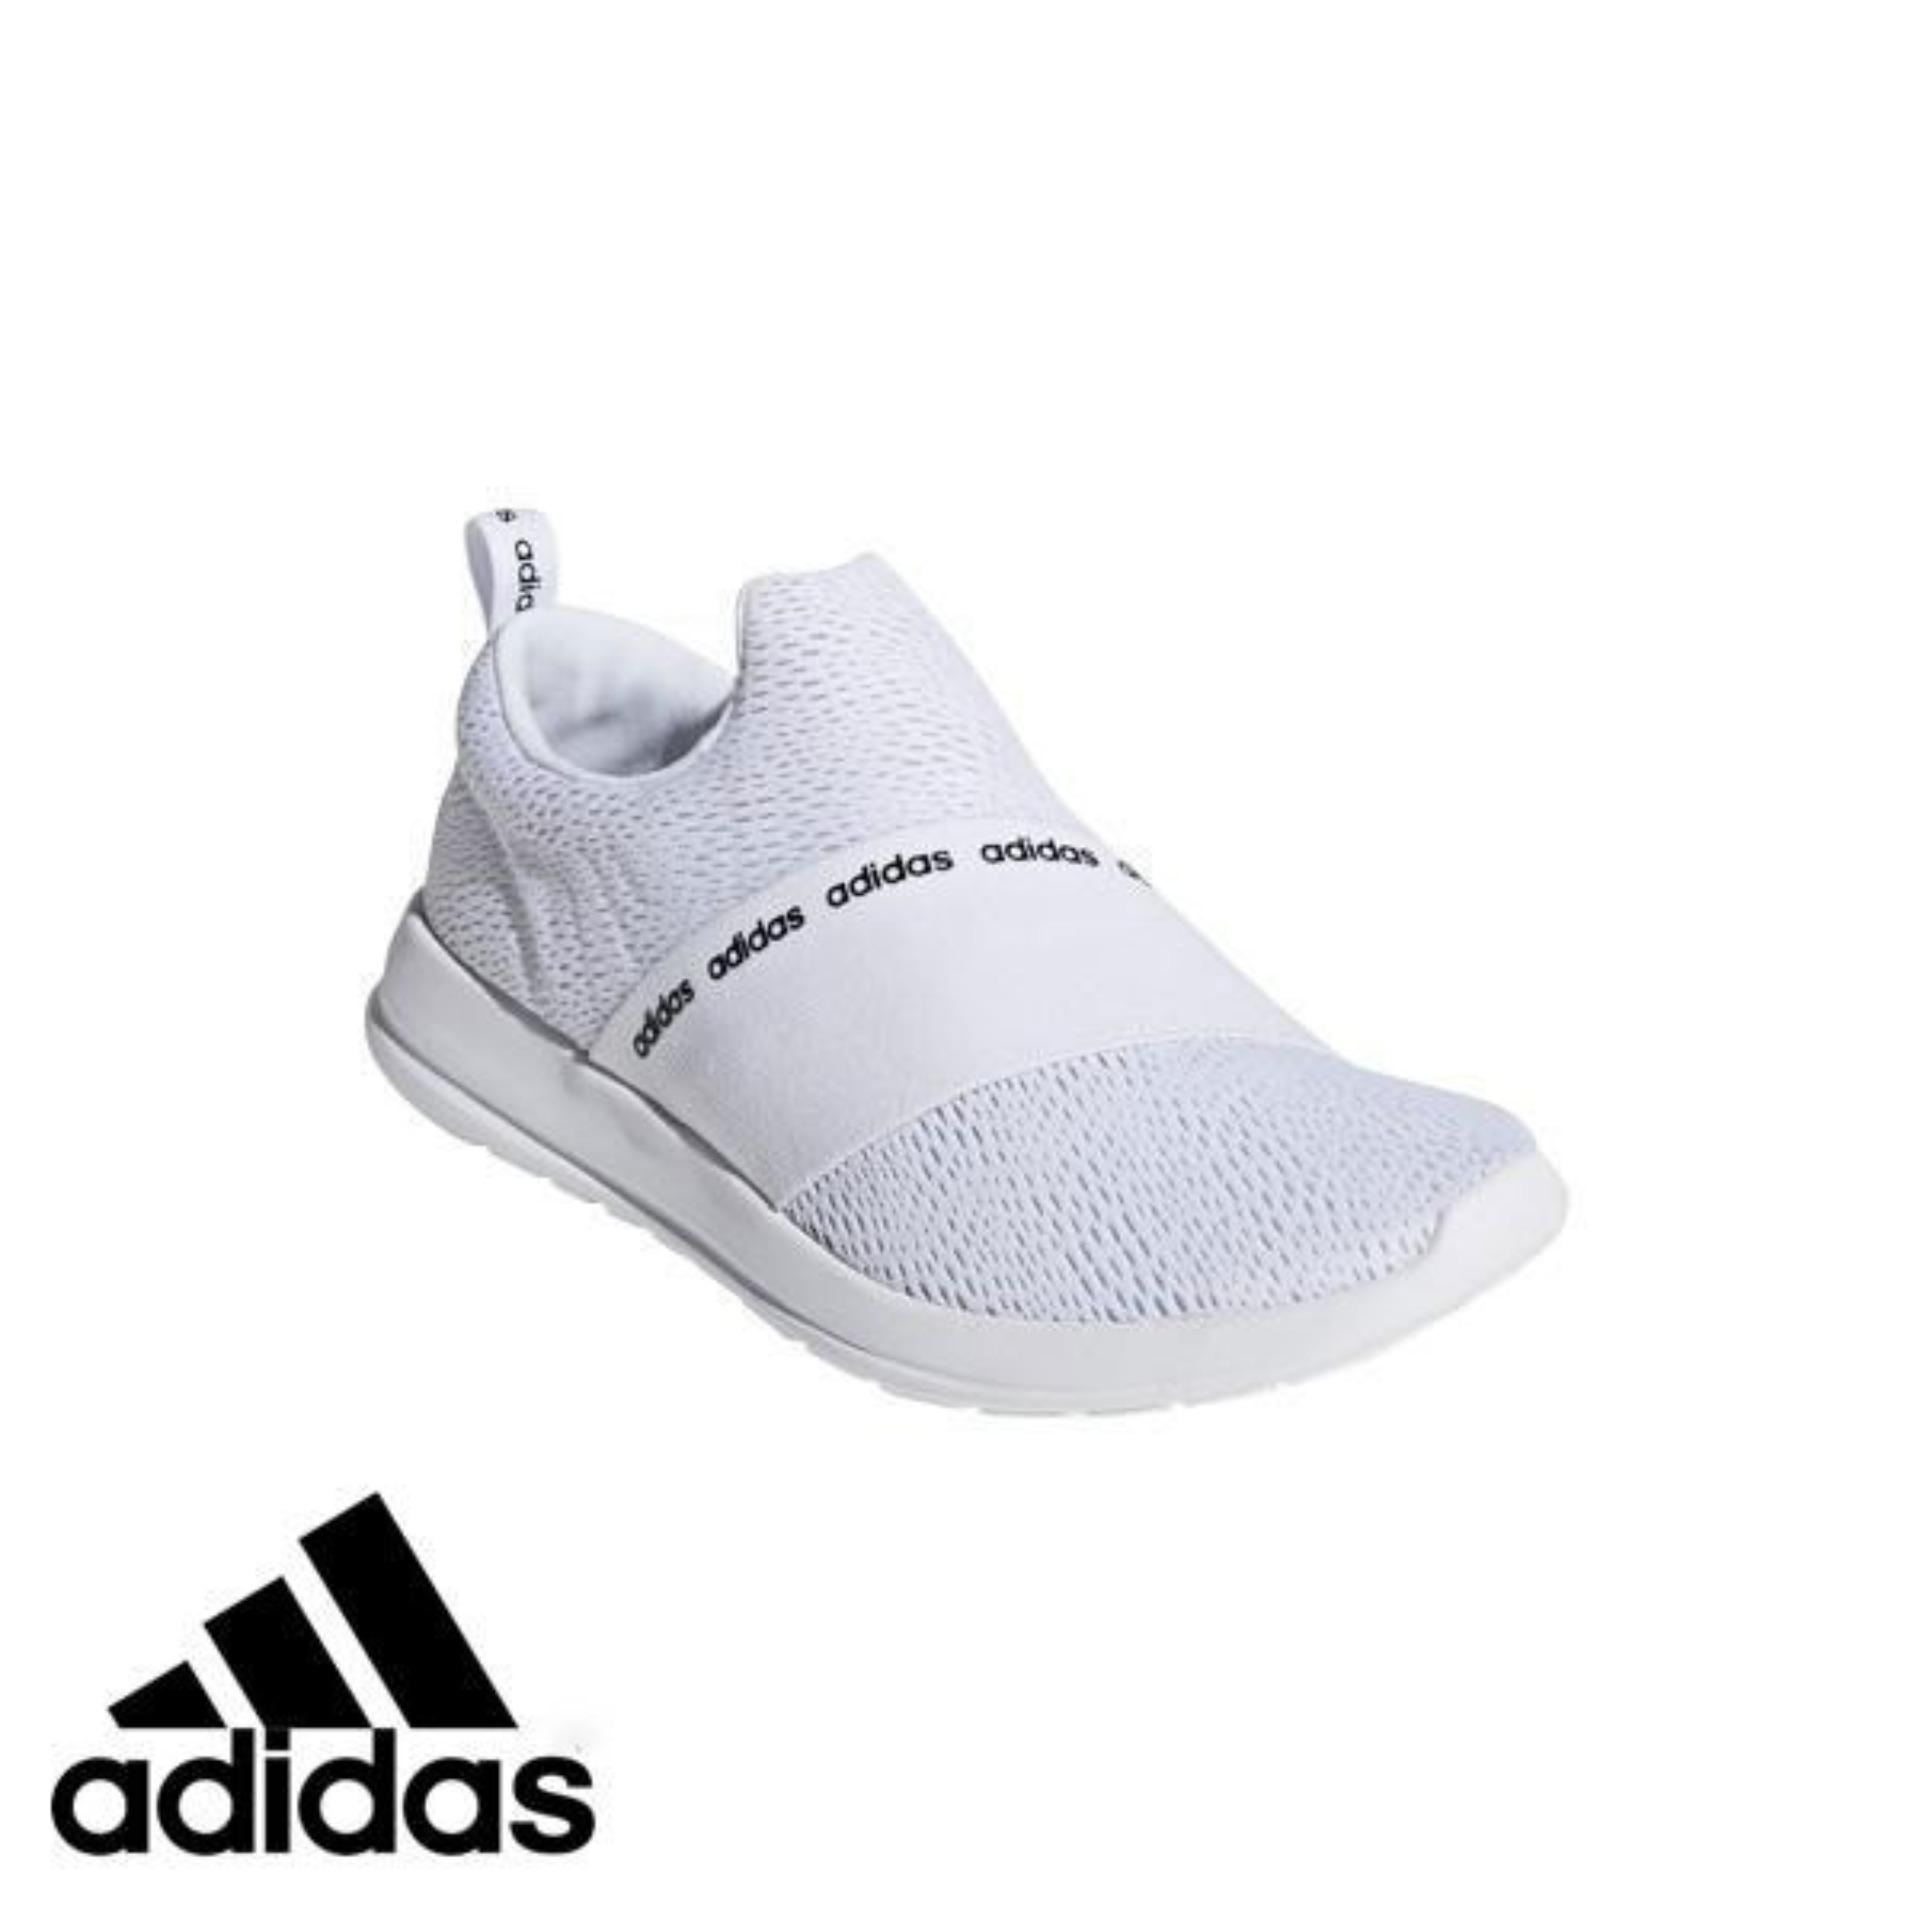 Adidas Sports Shoes Philippines - Adidas Sports Clothing for sale ... 8722b4c6d